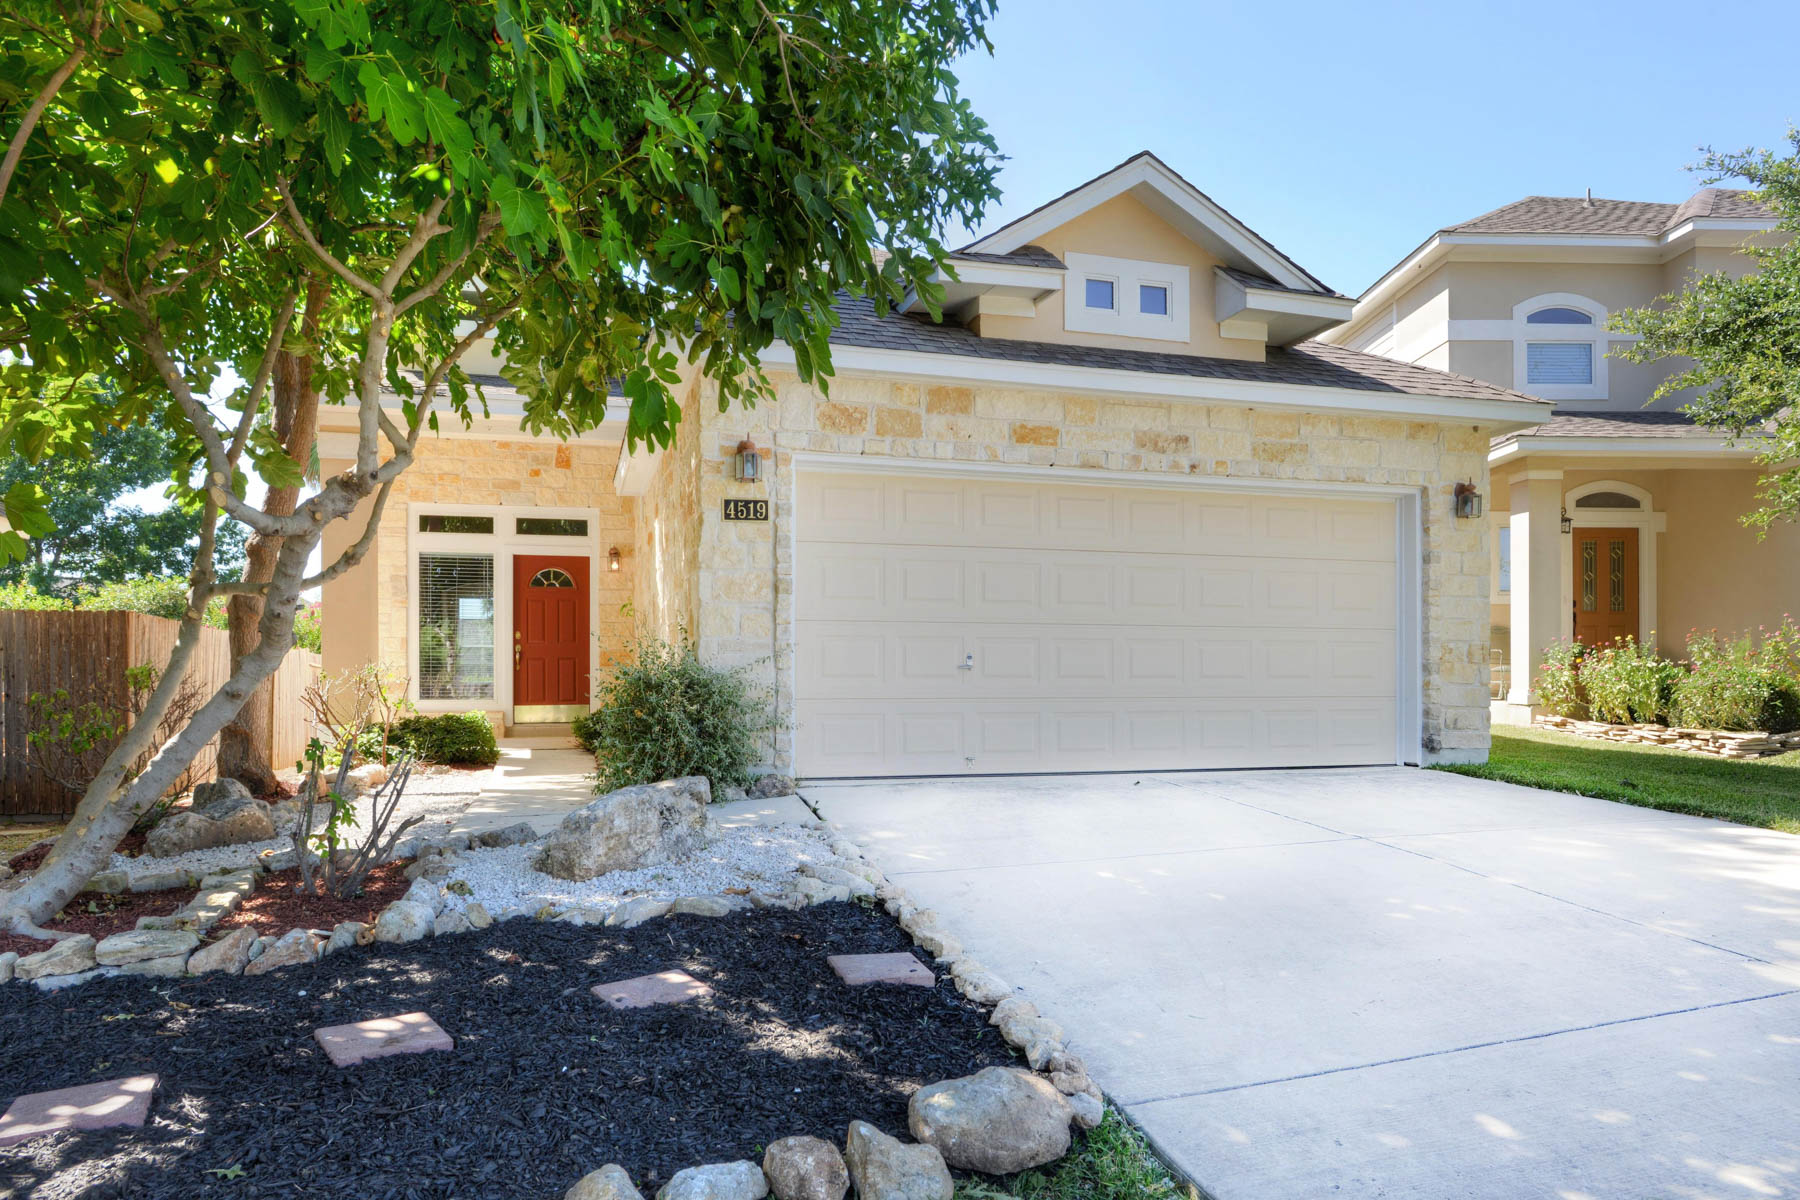 Single Family Home for Rent at Outstanding Rental in Coveted Shavano Park 4519 Shavano Ct San Antonio, Texas 78230 United States